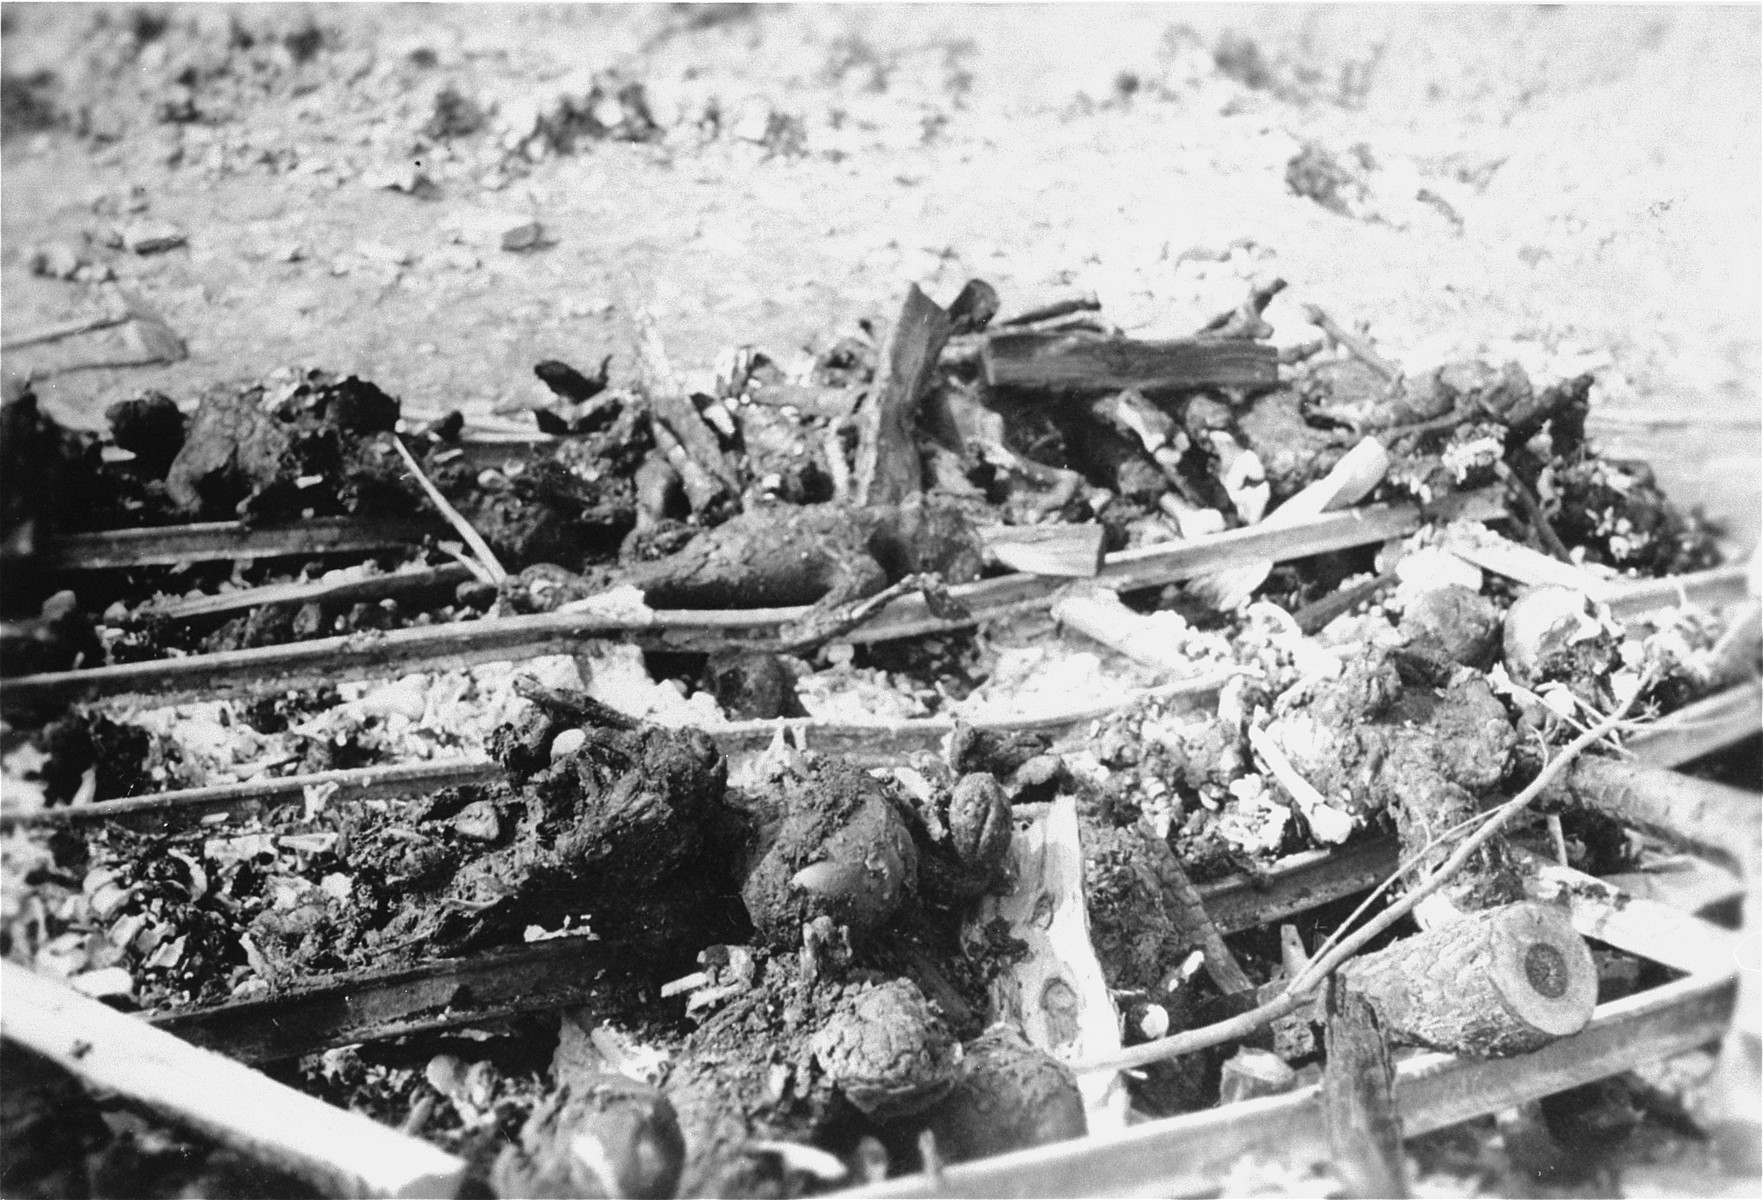 The charred remains of corpses burned by the SS prior to the evacuation of the Ohrdruf concentration camp.